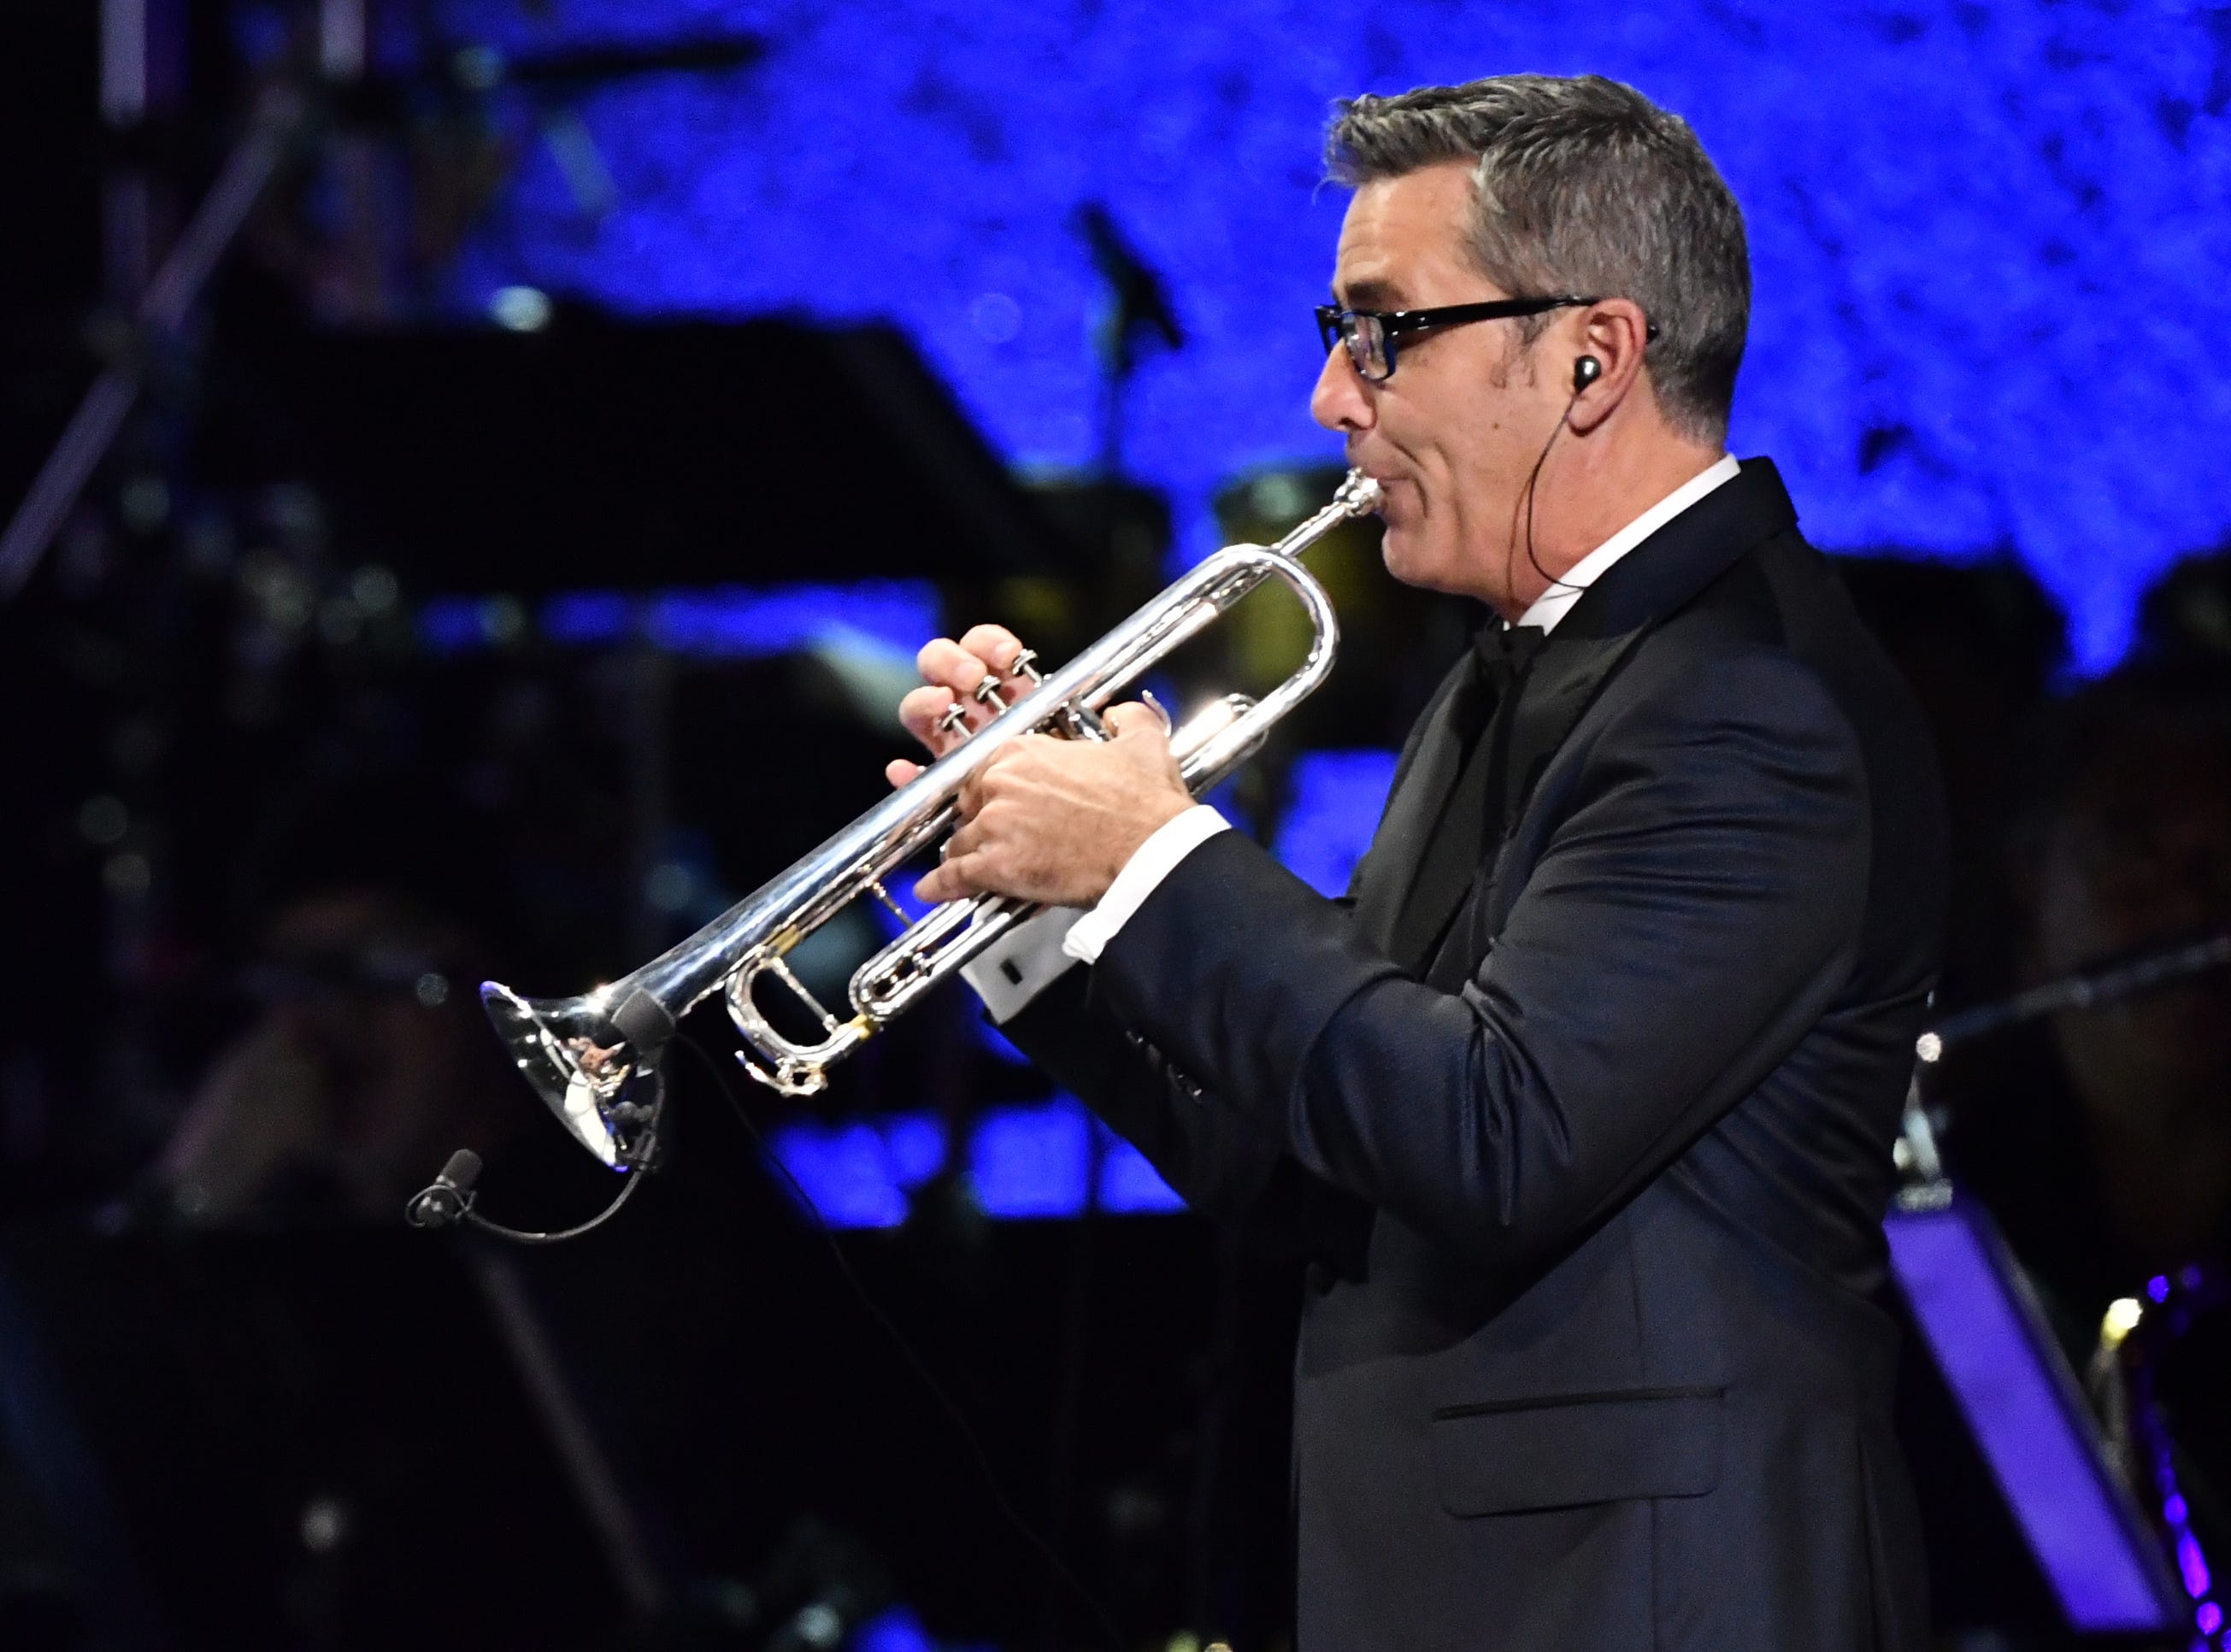 Trumpeter Craig Morris performs at the Grammy Awards Premiere Ceremony.